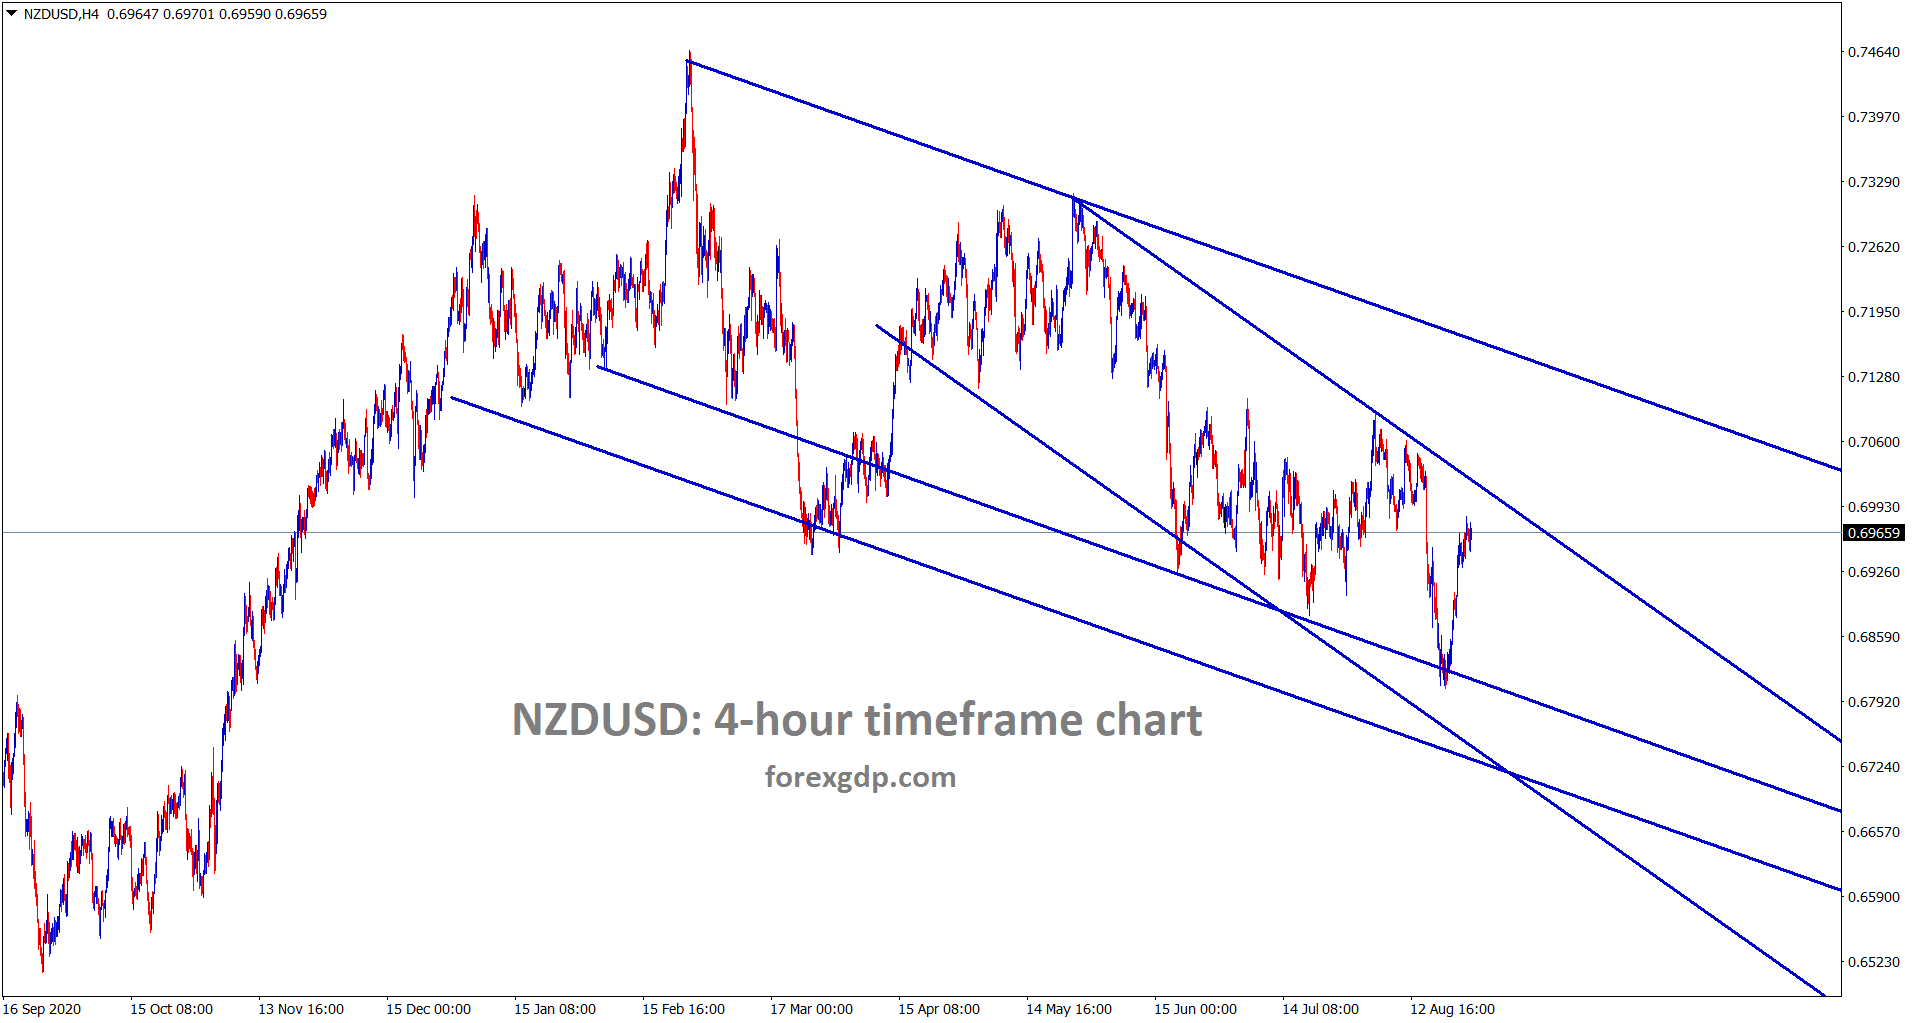 NZDUSD is moving in a descending channel